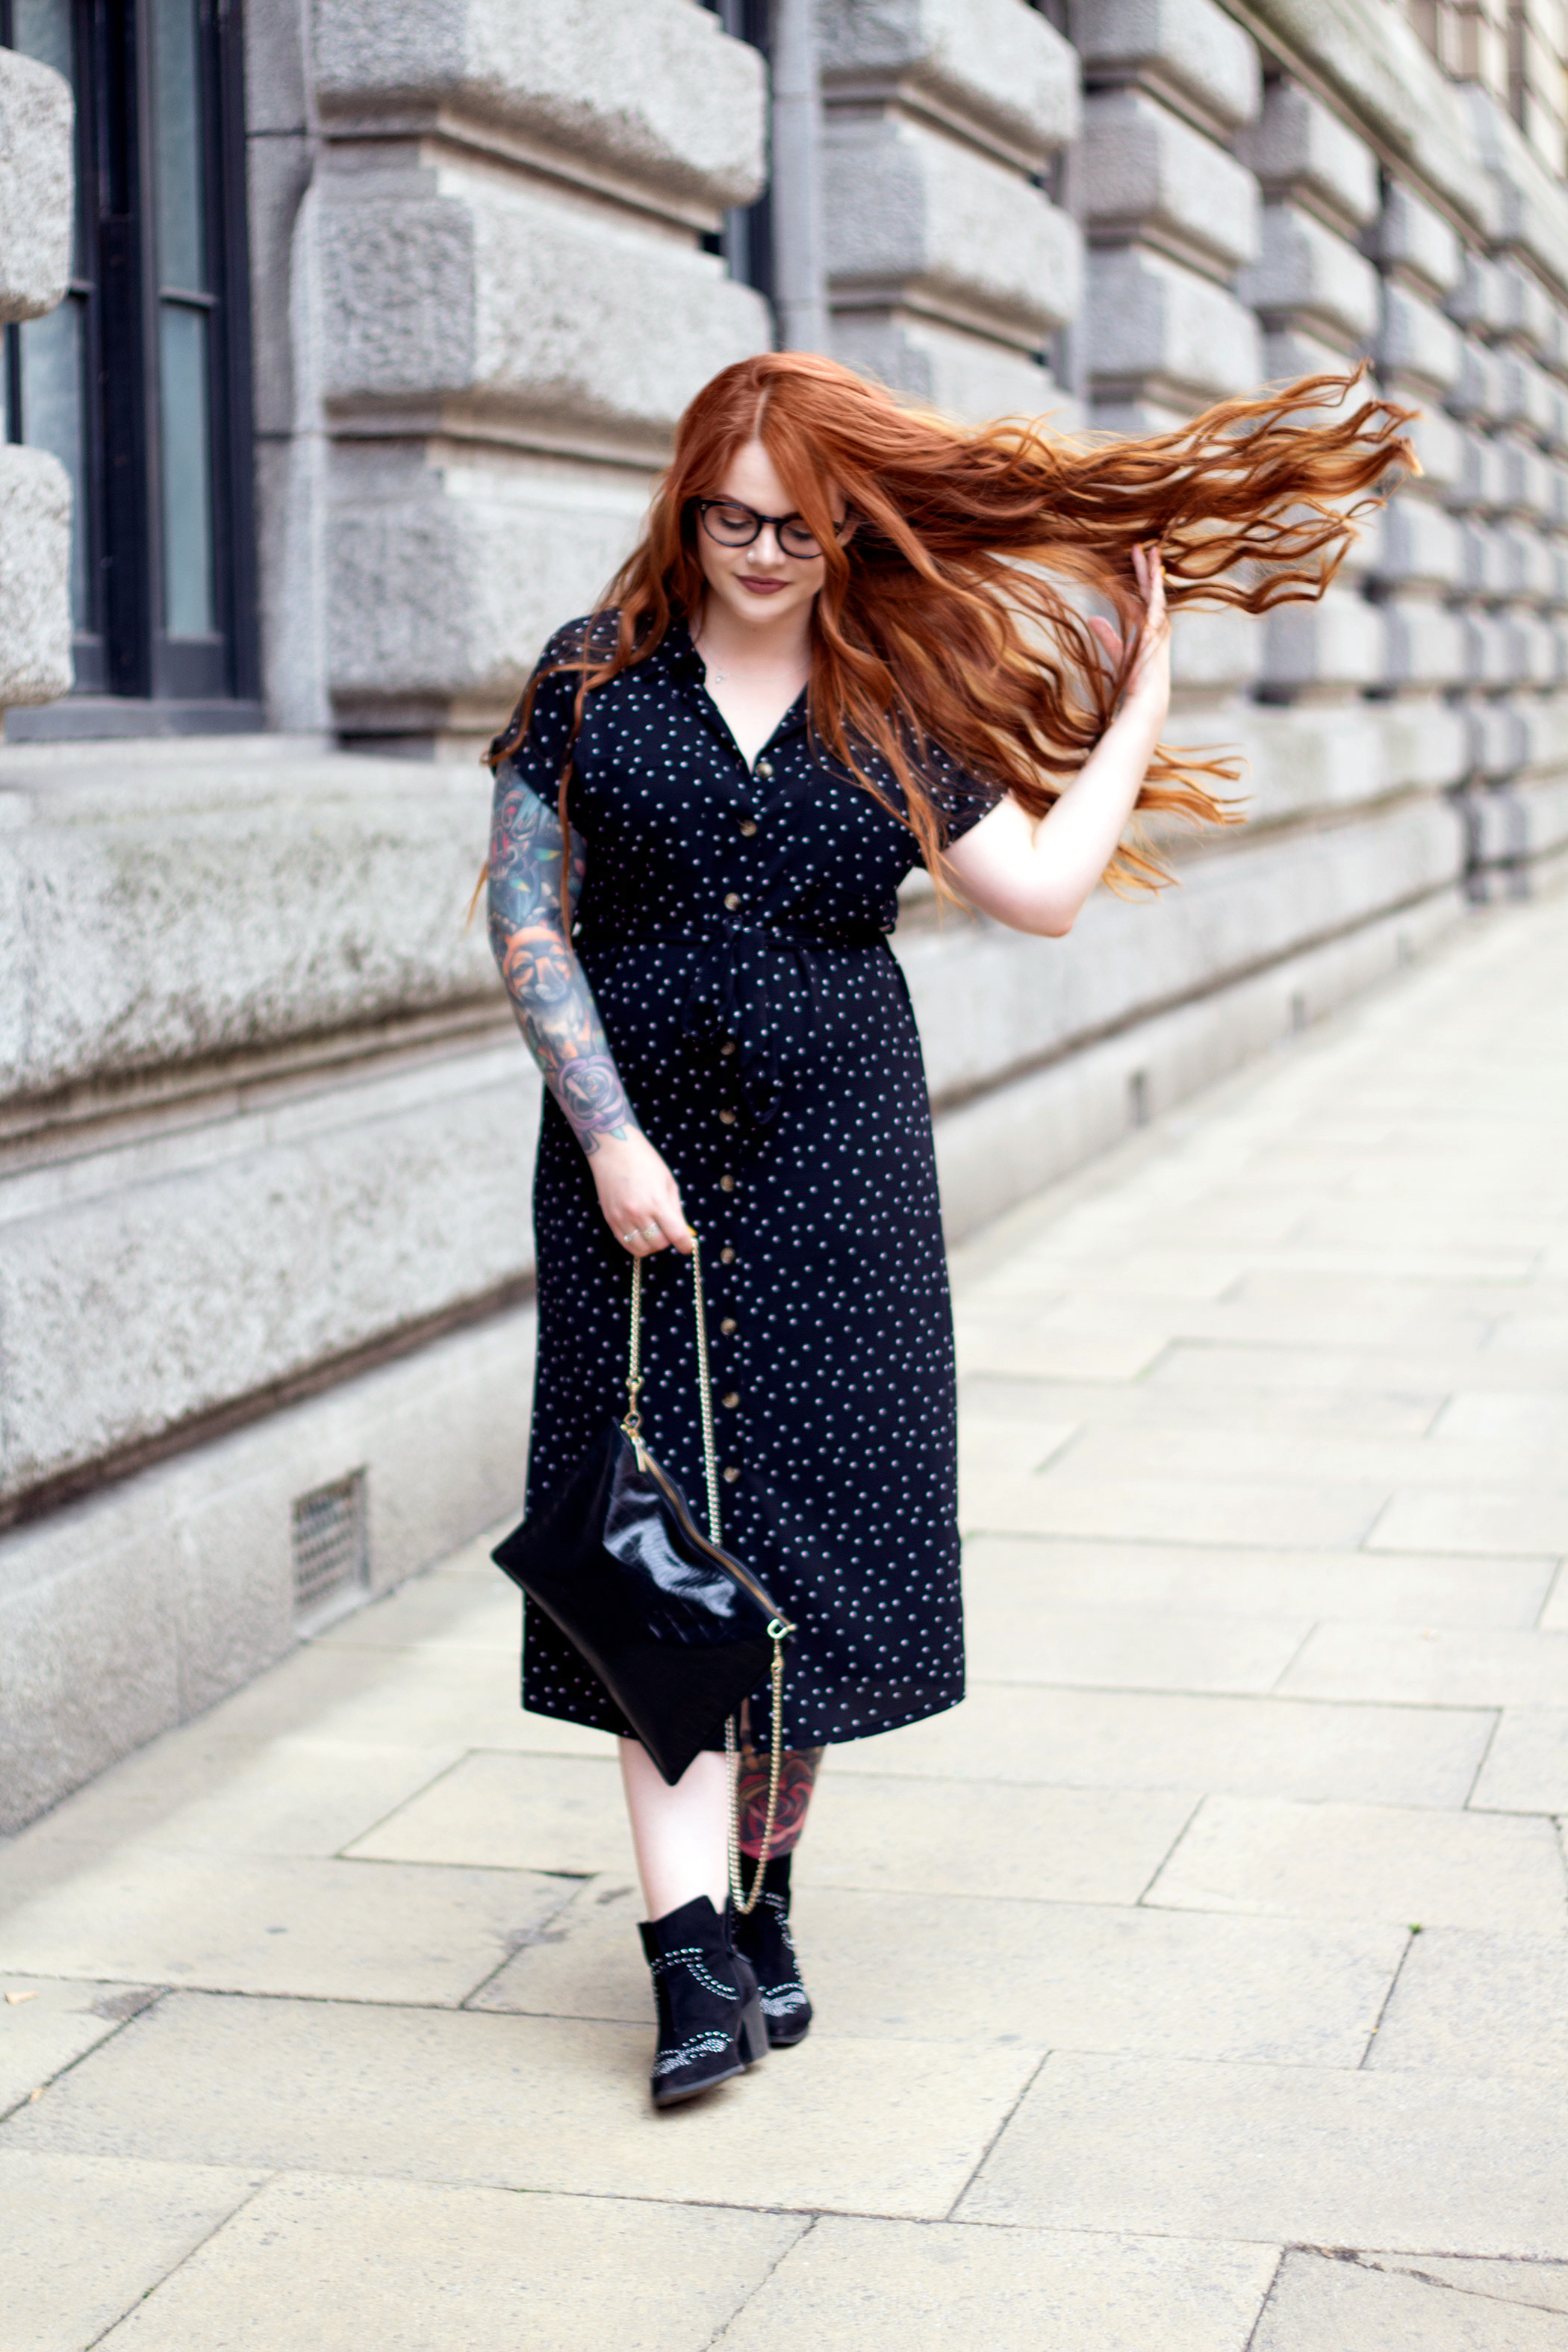 StephiEliza wearing star print New Look midi dress